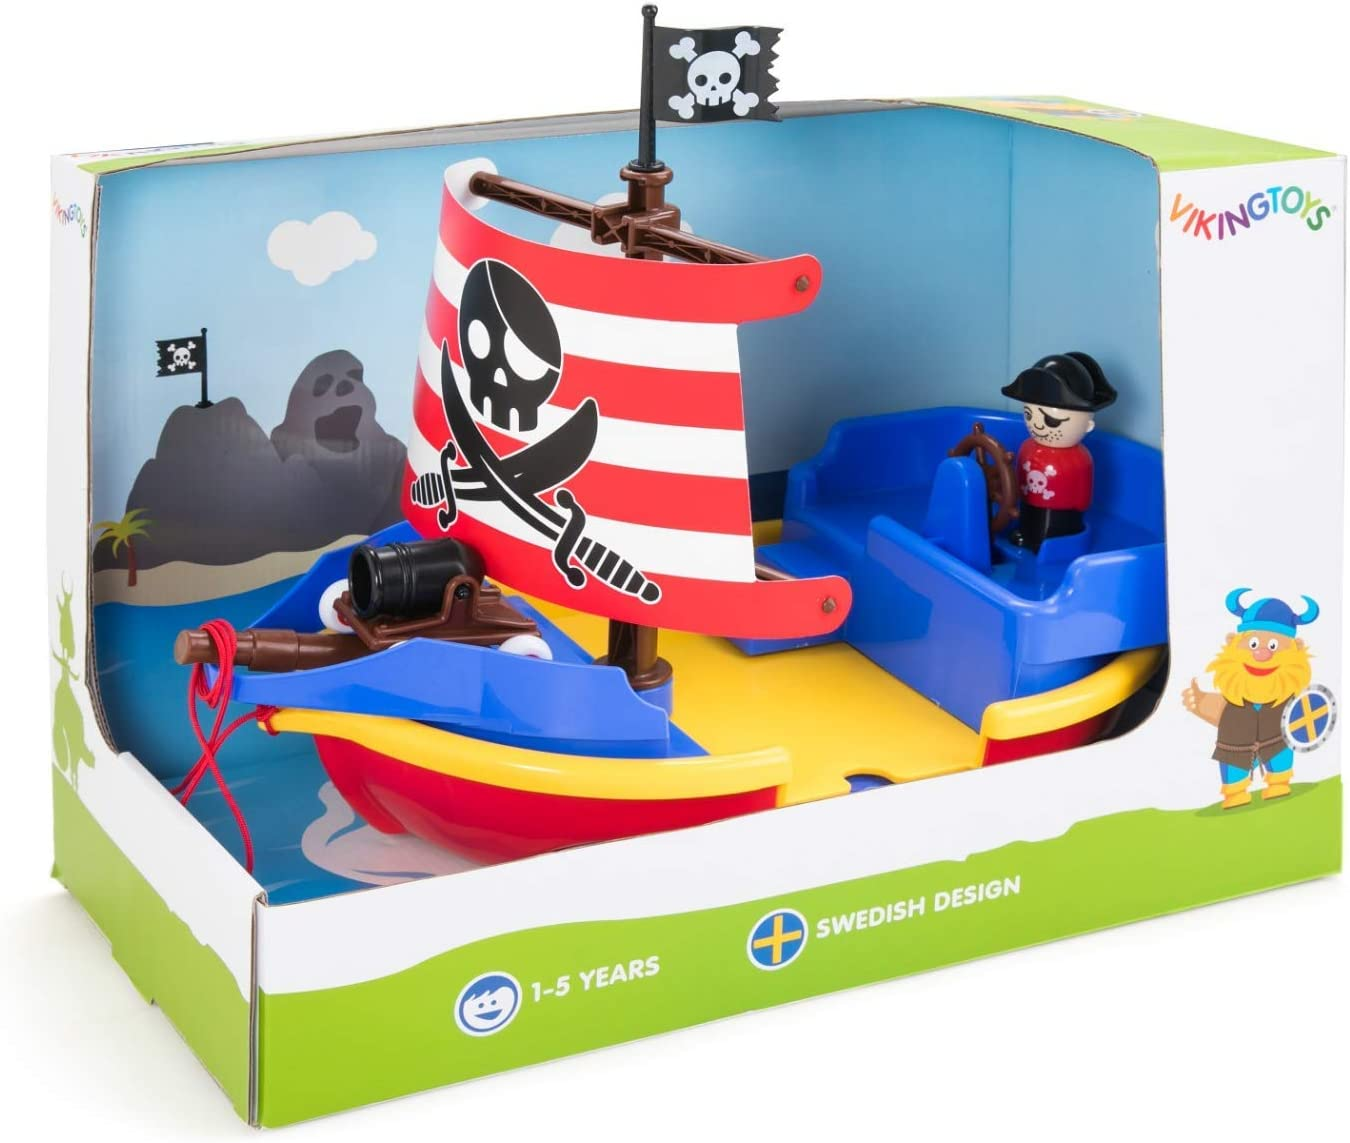 Viking Toys Popular products - Pirate Ship Toy Figure Cannon and New popularity with Playset